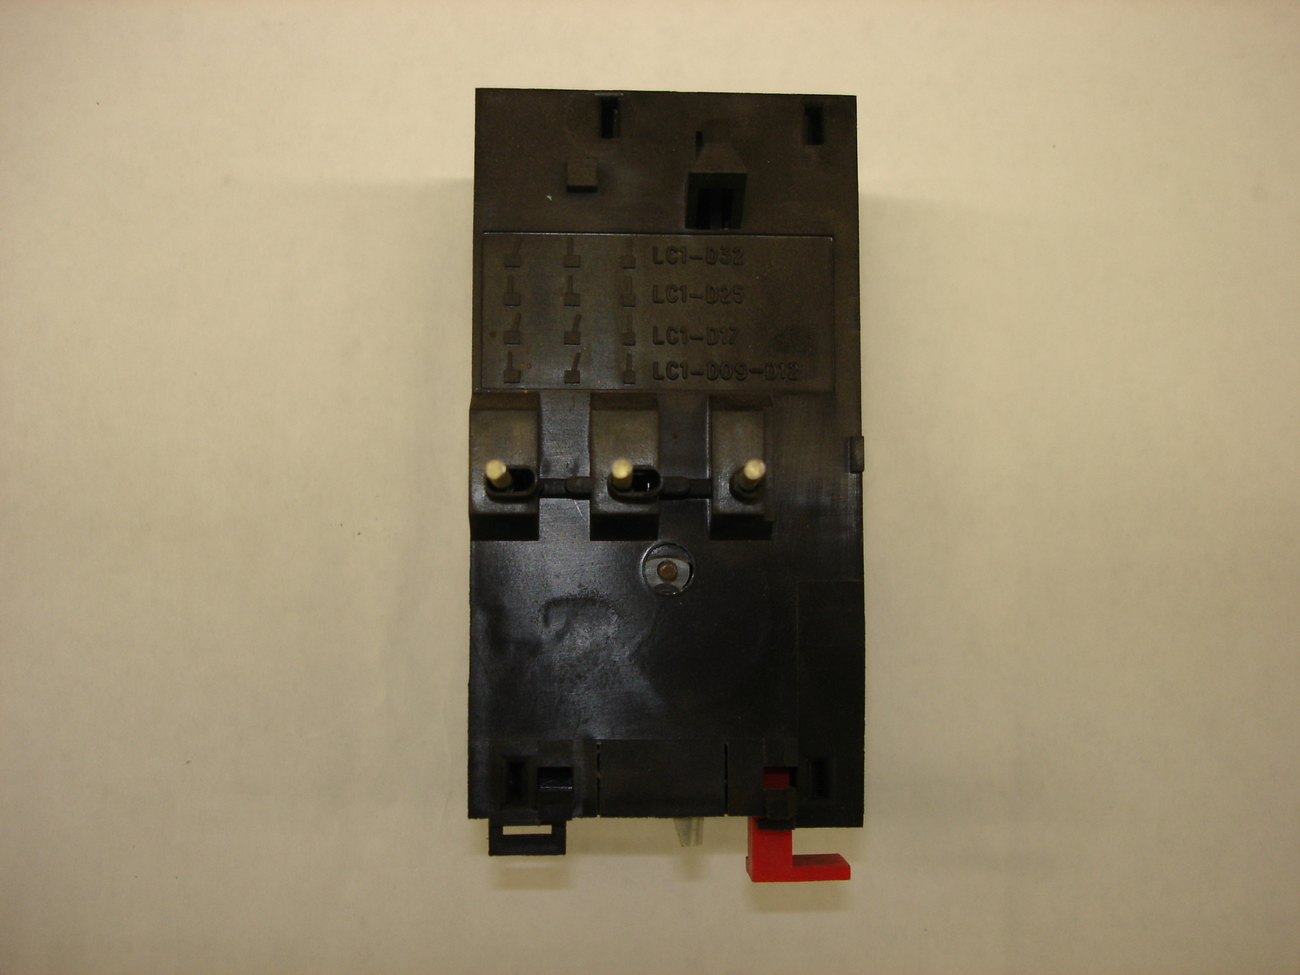 Telemecanique Thermal Overload Relay LR1-D09310